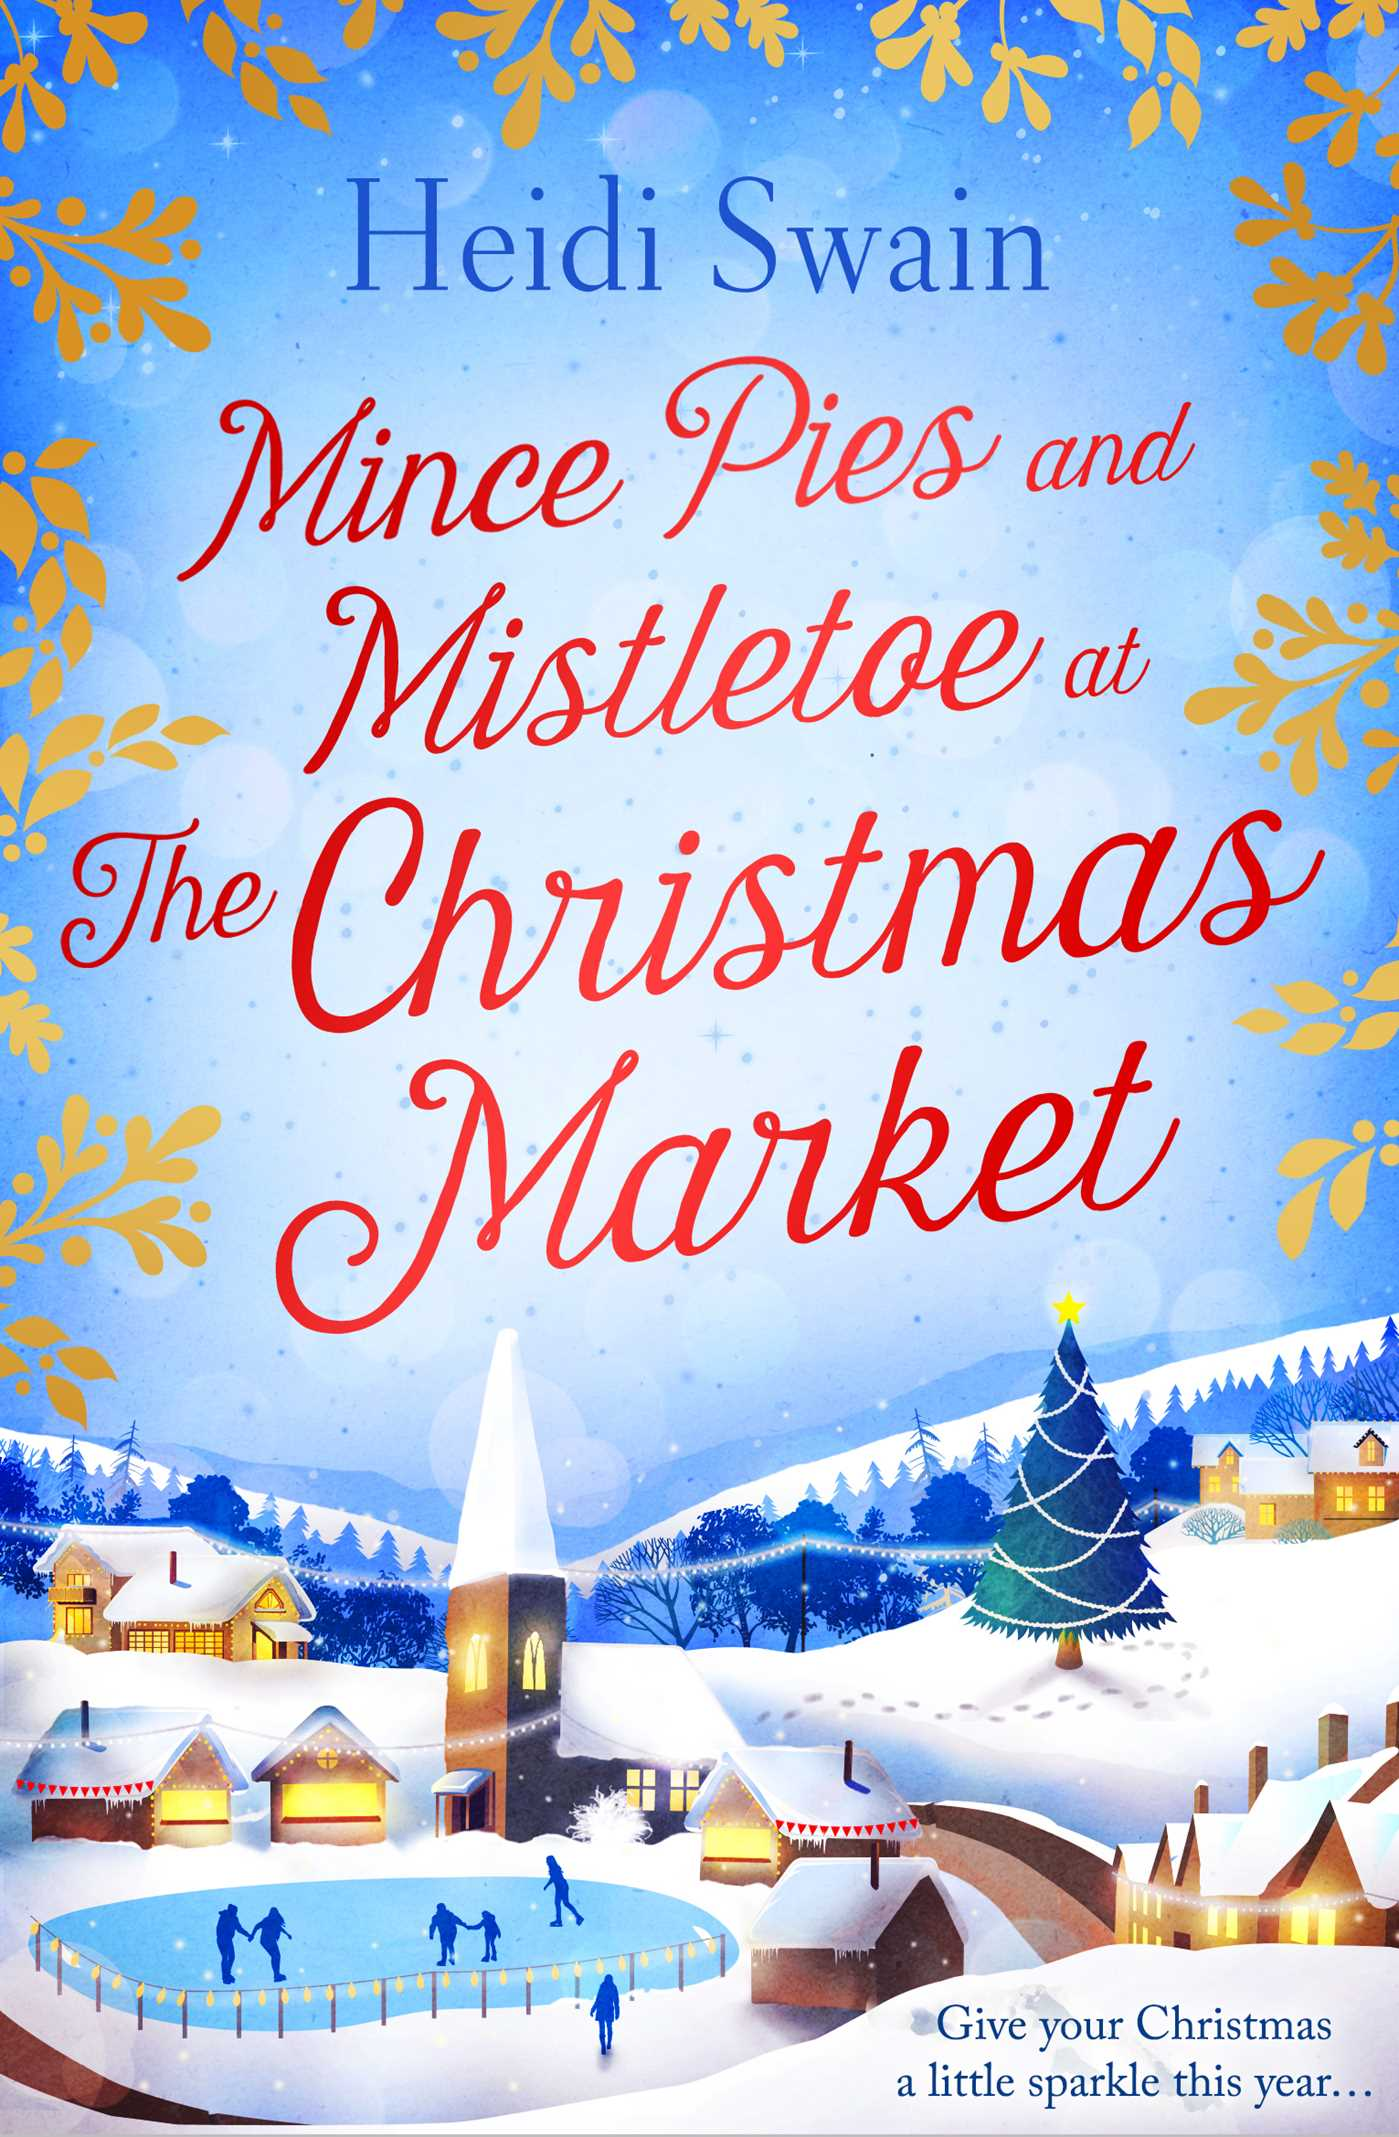 Mince pies and mistletoe at the christmas market 9781471147272 hr